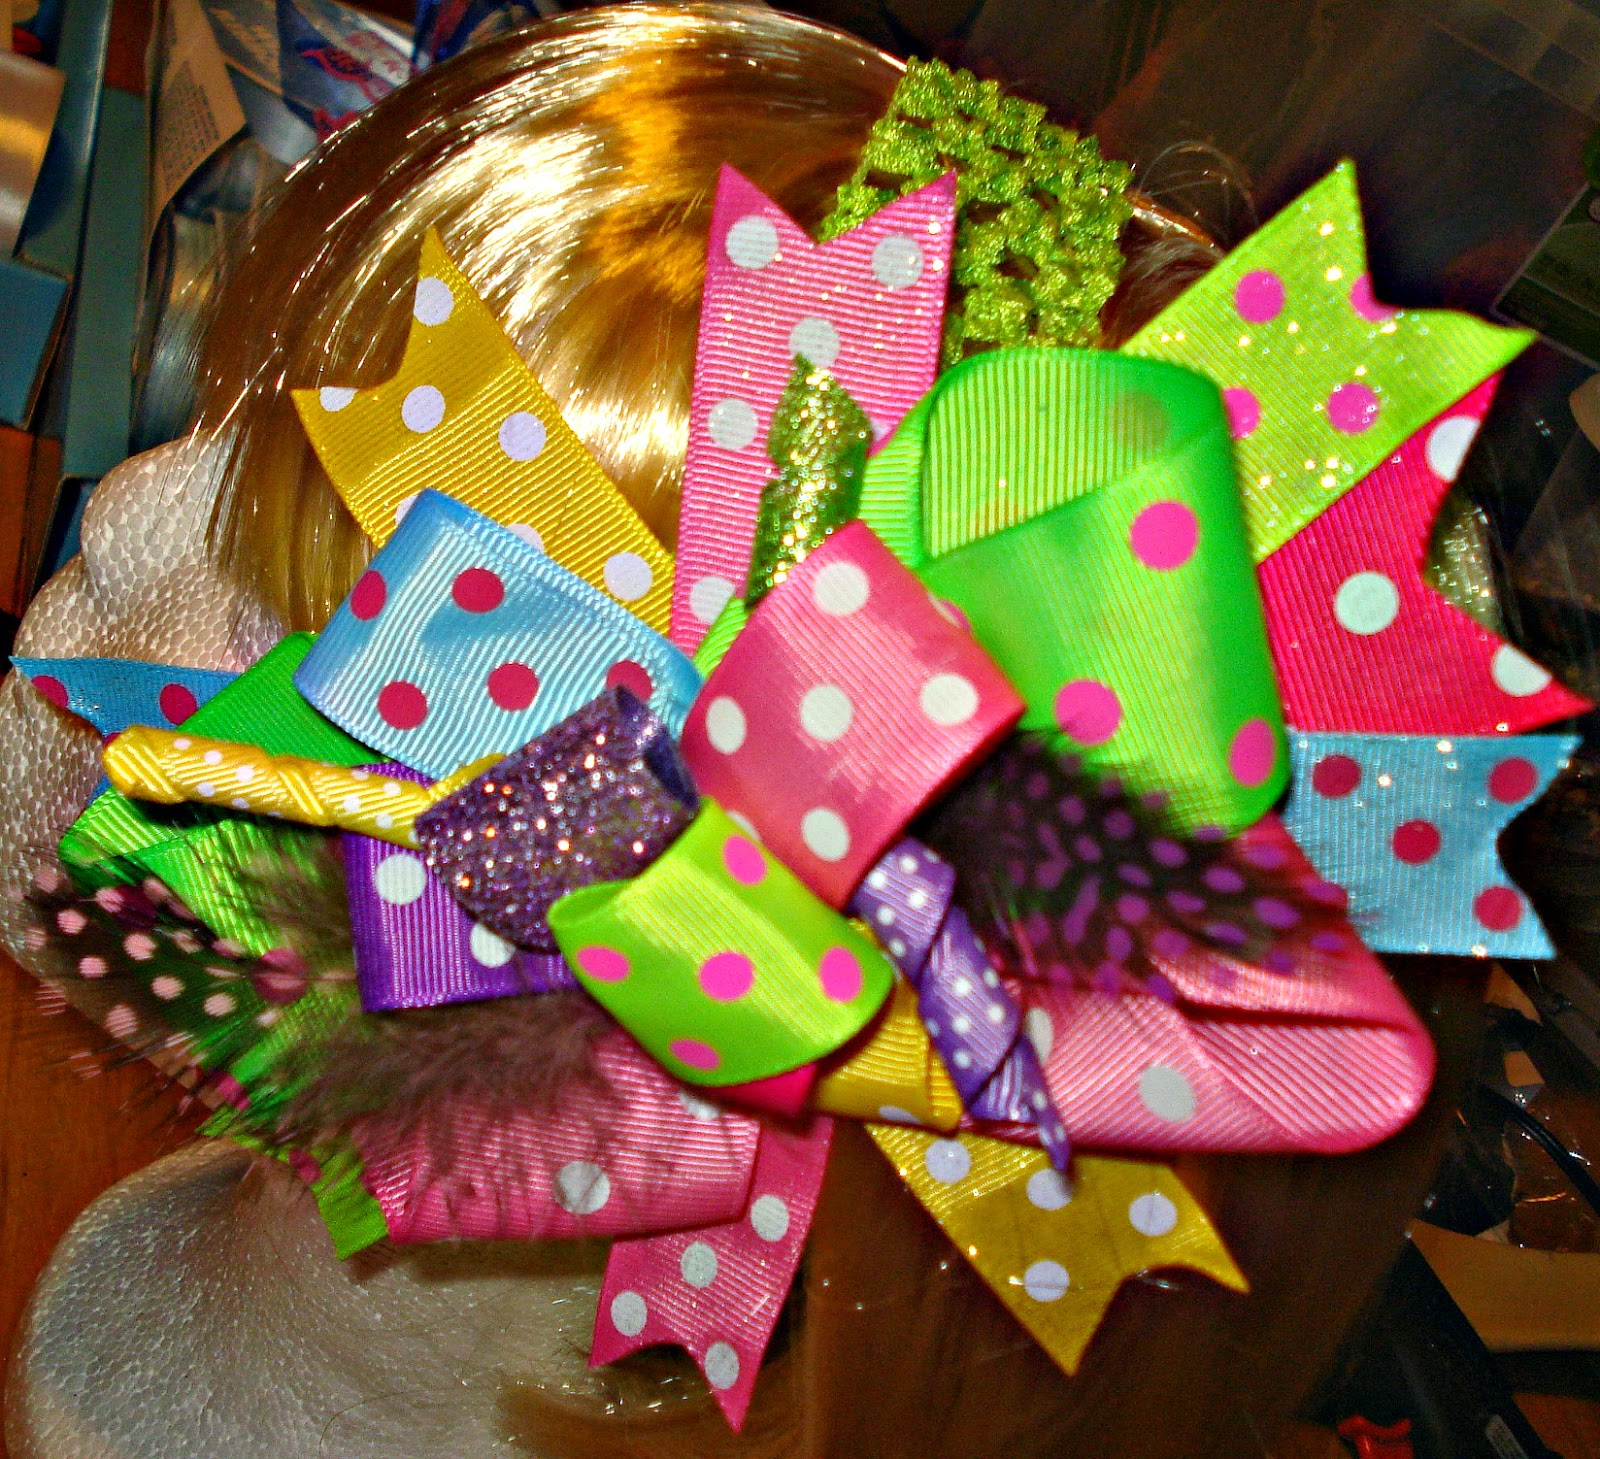 http://www.ebay.com/itm/Easter-Hair-Bow-Large-U-choose-headband-alligator-clip-FREE-SHIPPING-/151273930983?pt=US_Girls_Accessories&hash=item2338a100e7